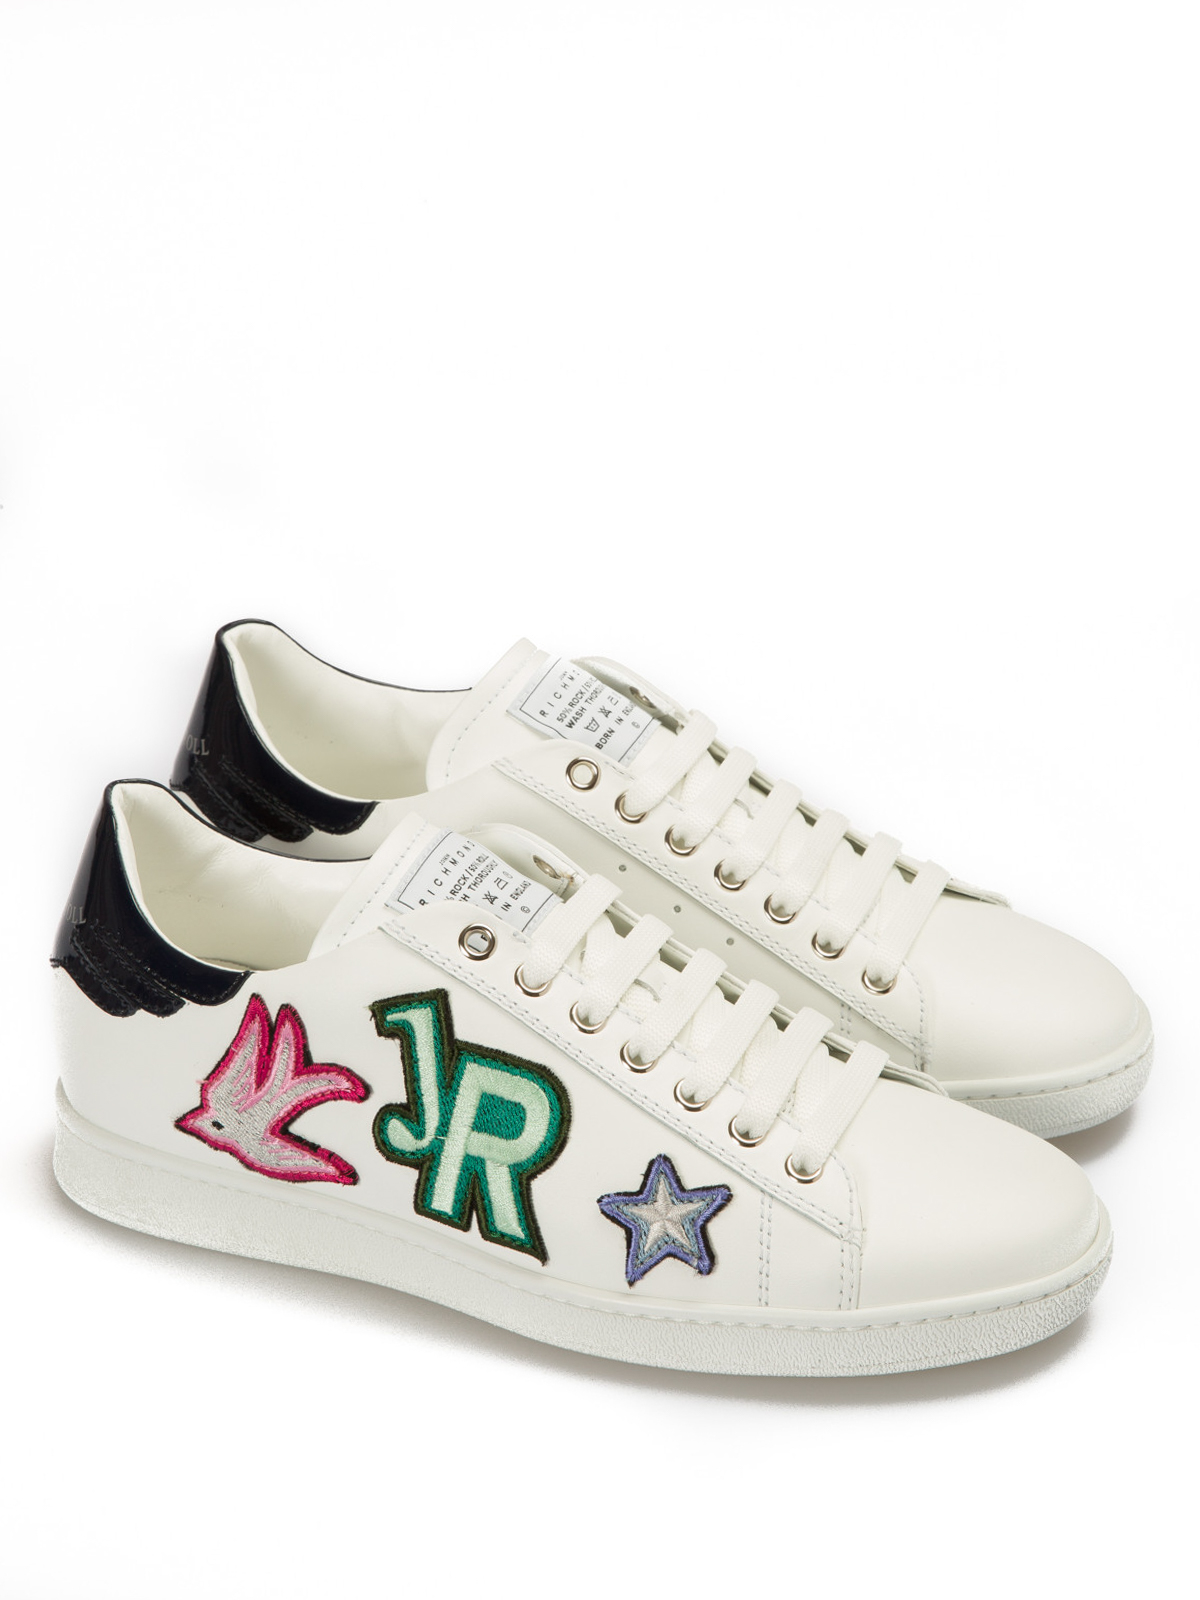 John Richmond Sneaker in pelle Rock'n'roll sneakers